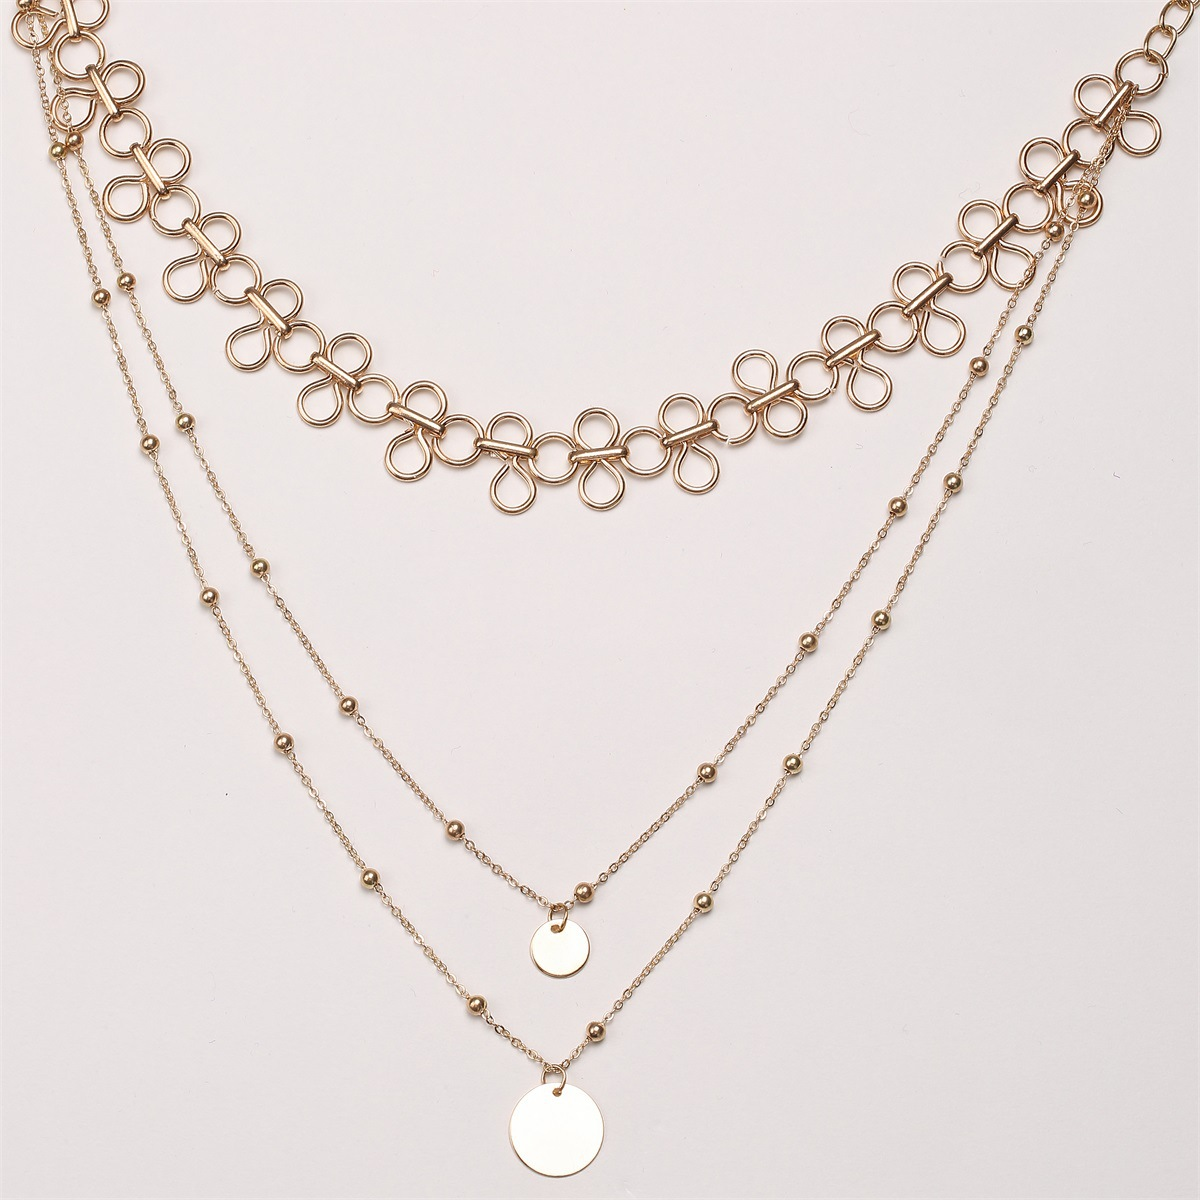 Occident and the United States alloy plating necklace (C2185 gold)NHXR1458-C2185 gold